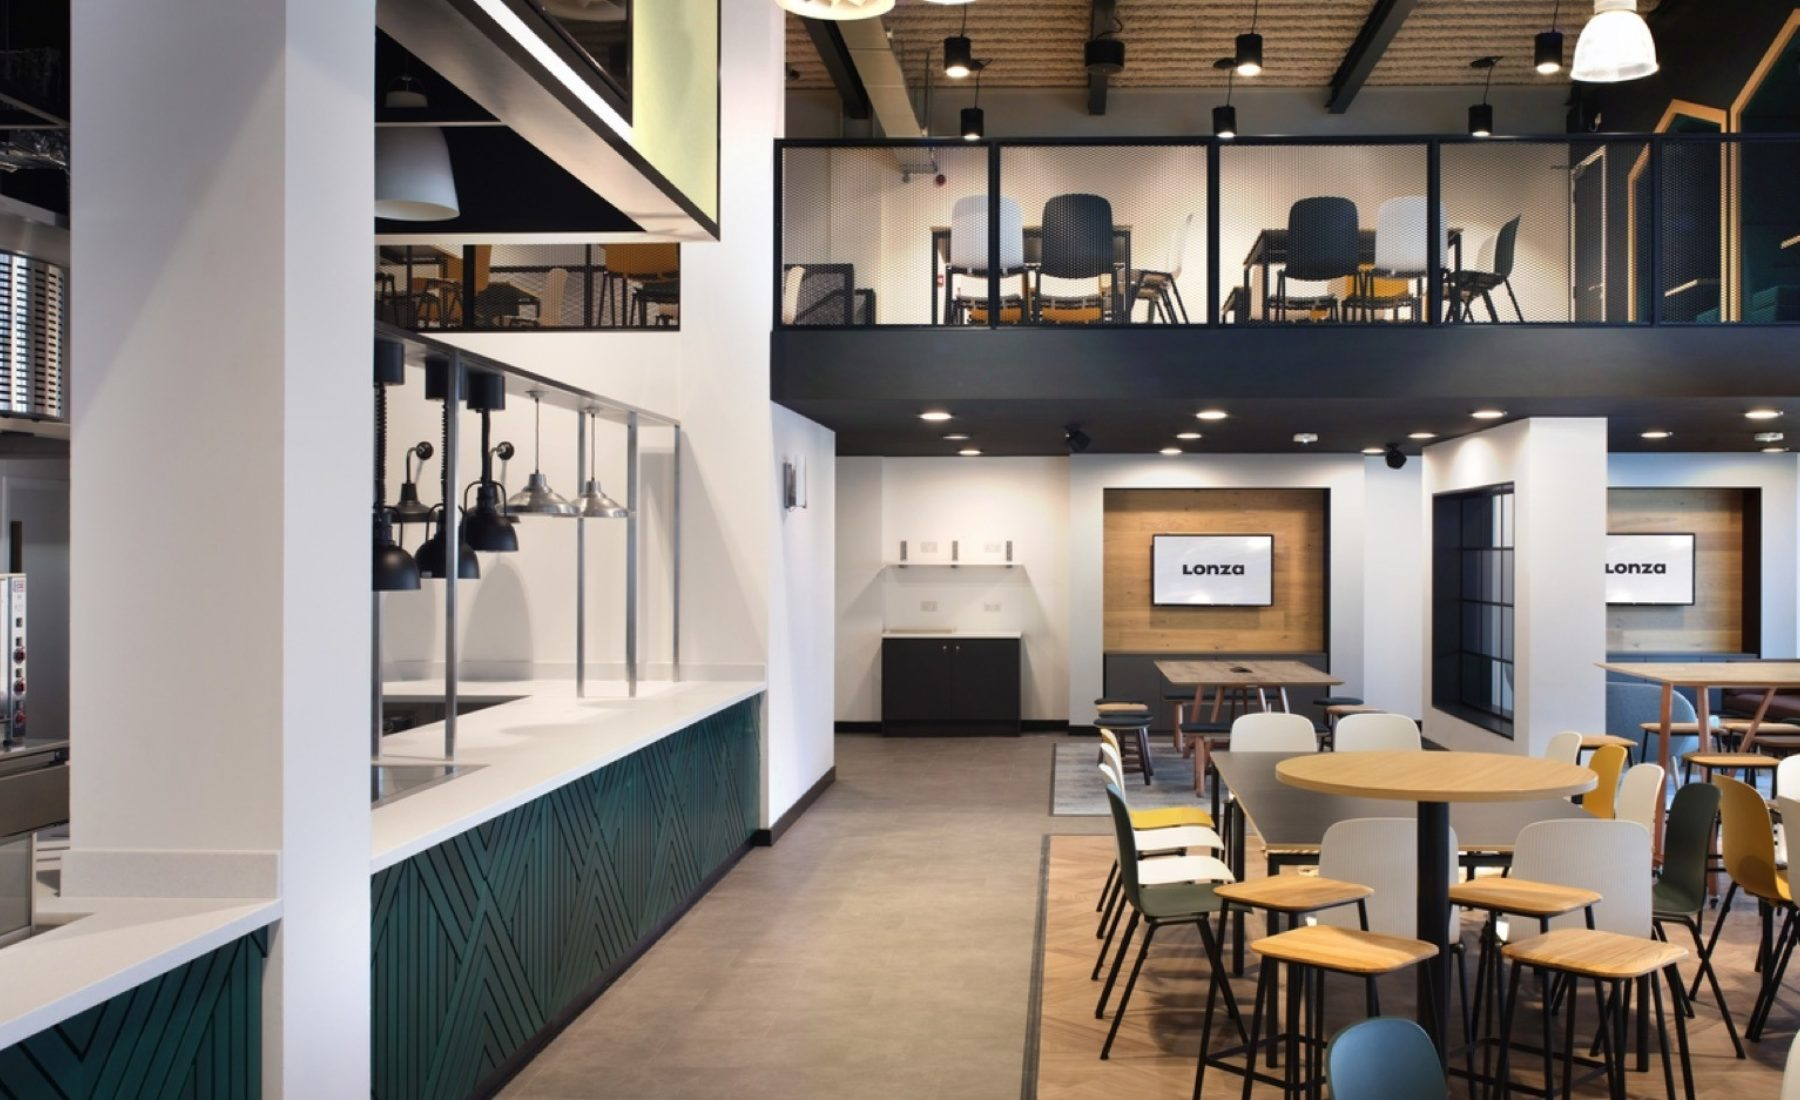 Lonza staff restaurant design and fit out